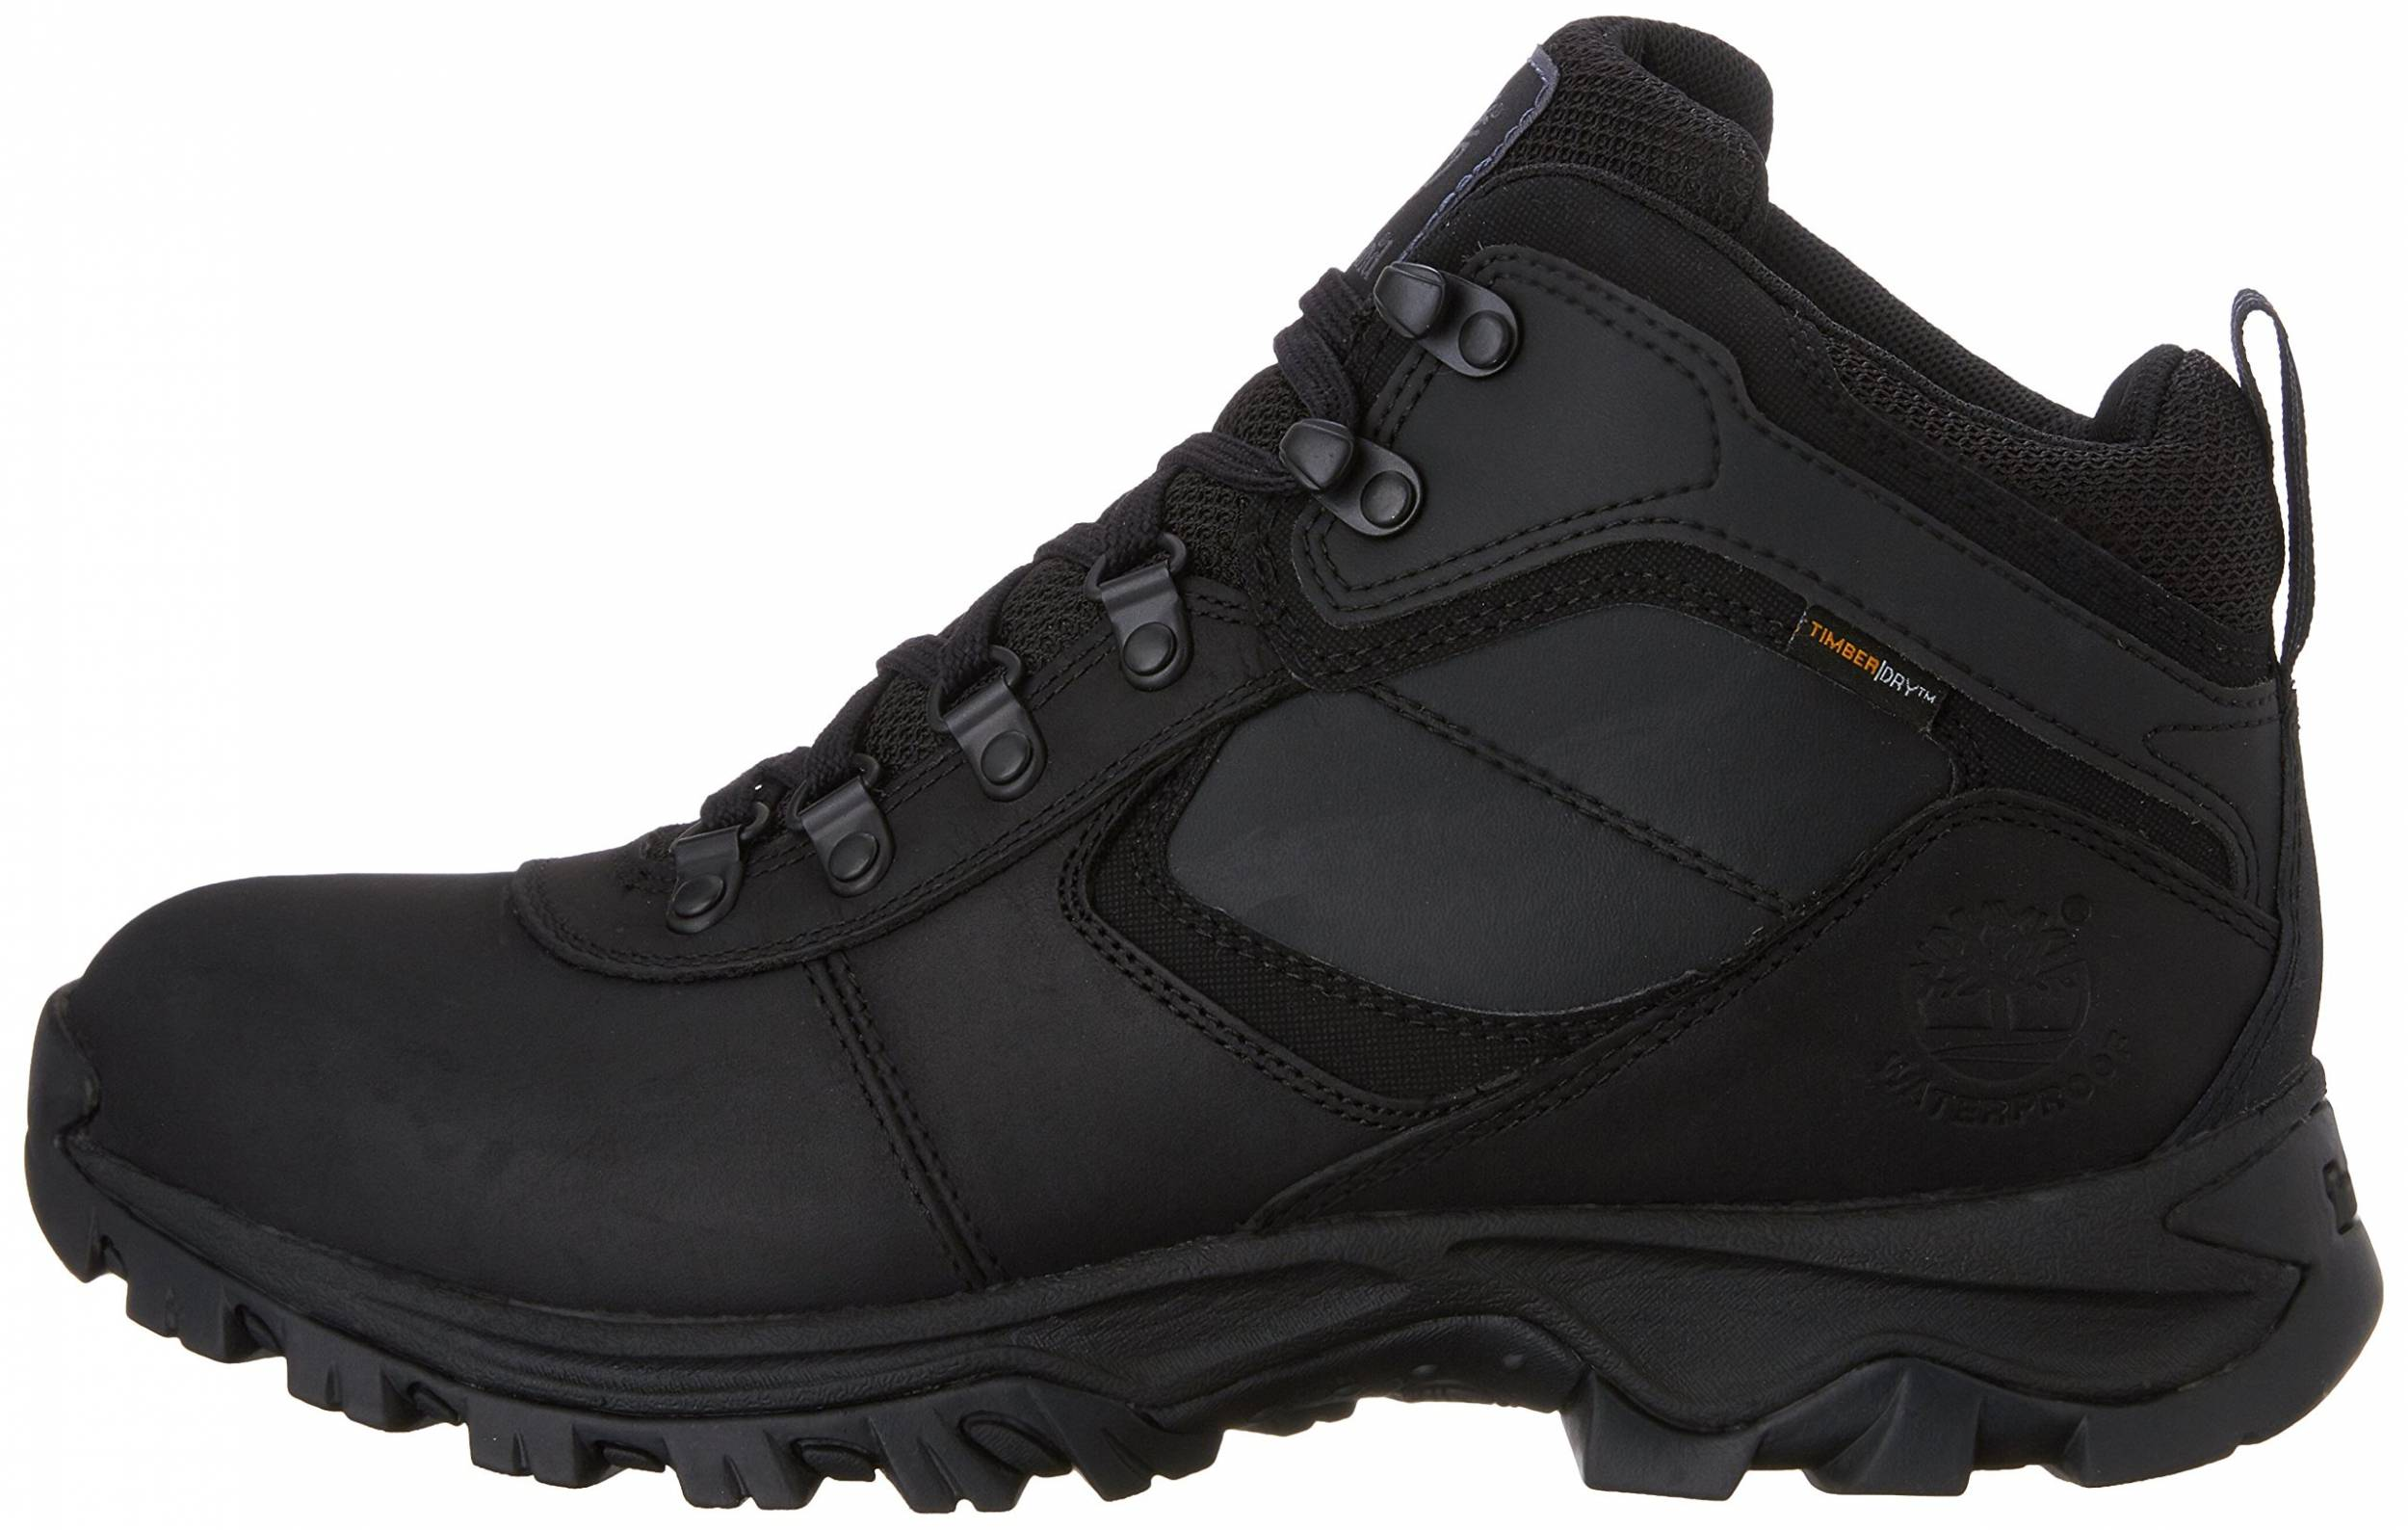 Save 25% on Cheap Hiking Boots (54